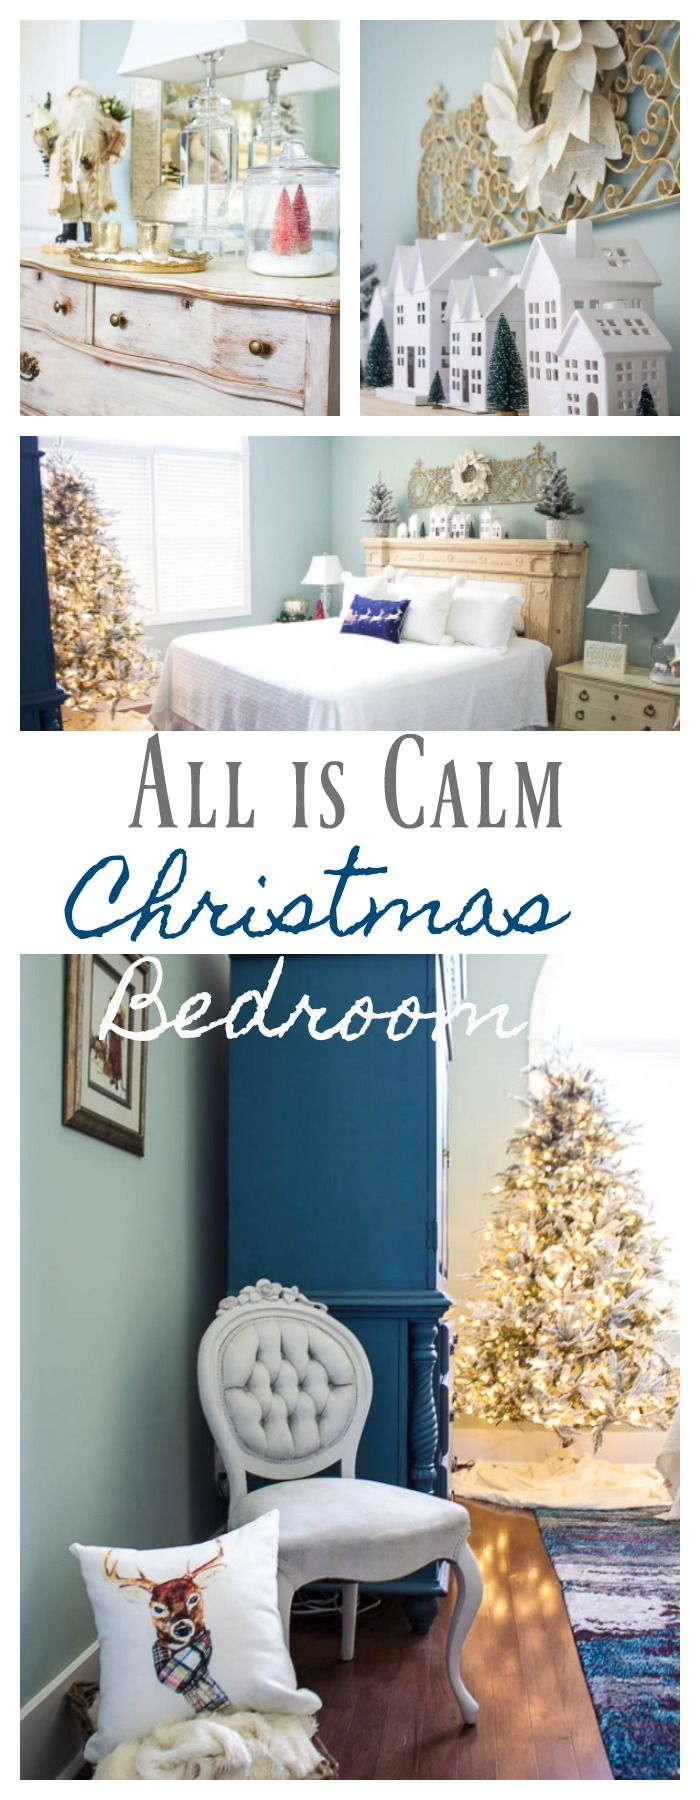 All is Calm Christmas Bedroom Christmas bedroom Magnolia wreath